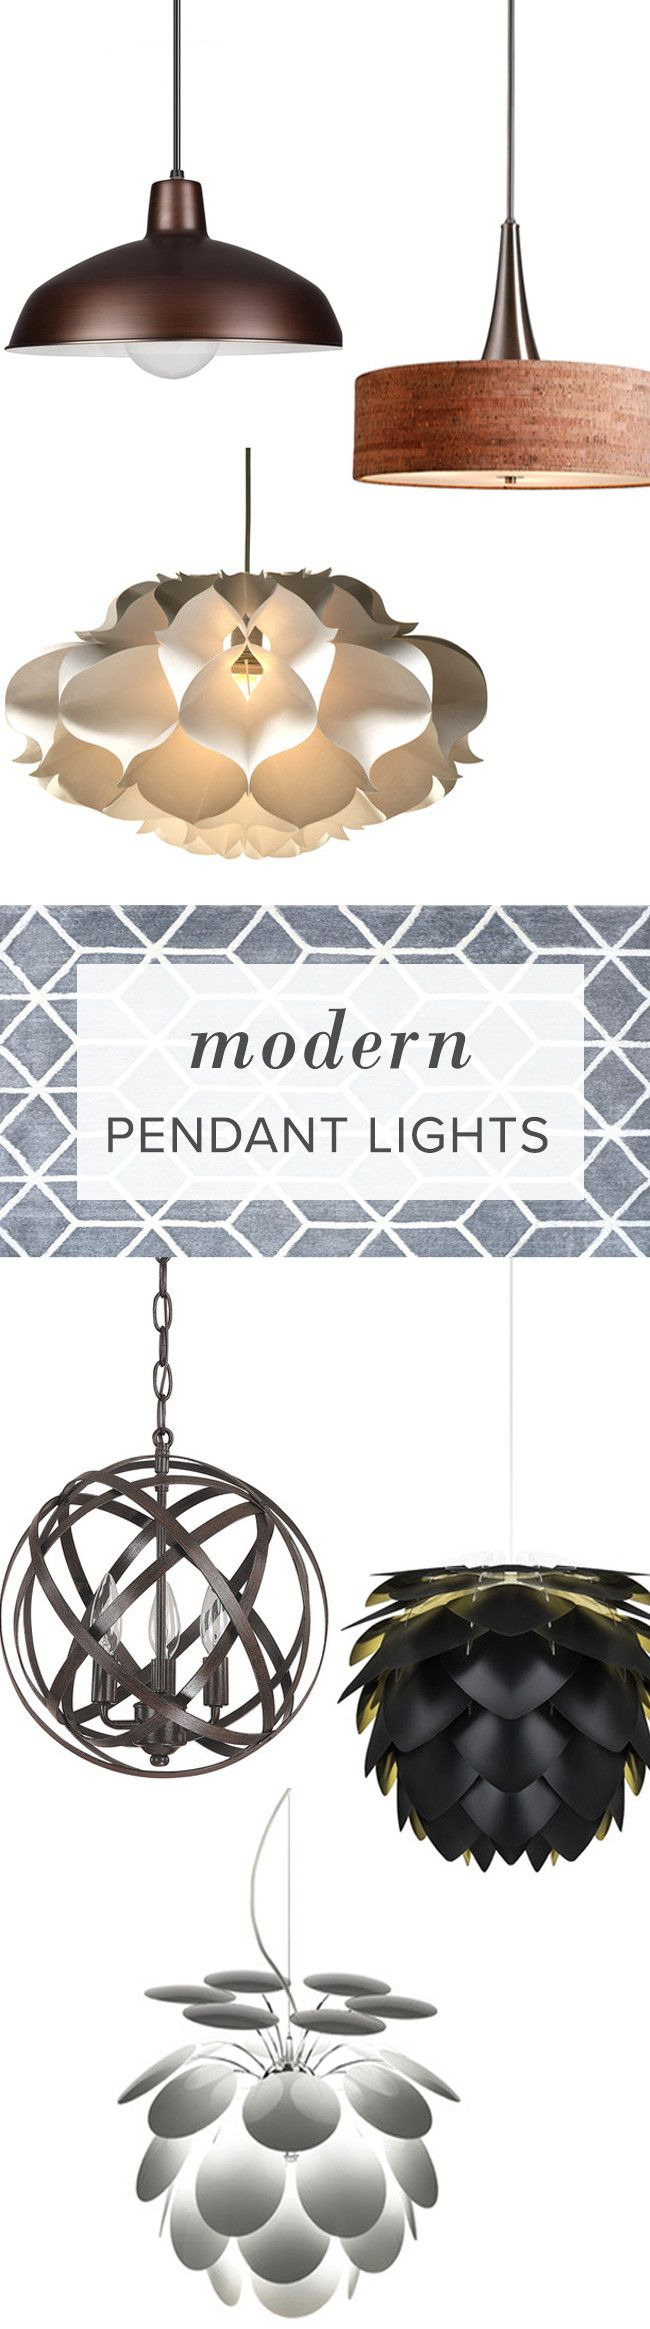 Make a statement with a beautiful, bold pendant. Whether it's for your living room, kitchen or bedroom, AllModern has affordable modern pendants to achieve that finishing touch. FREE SHIPPING on orders over $49.